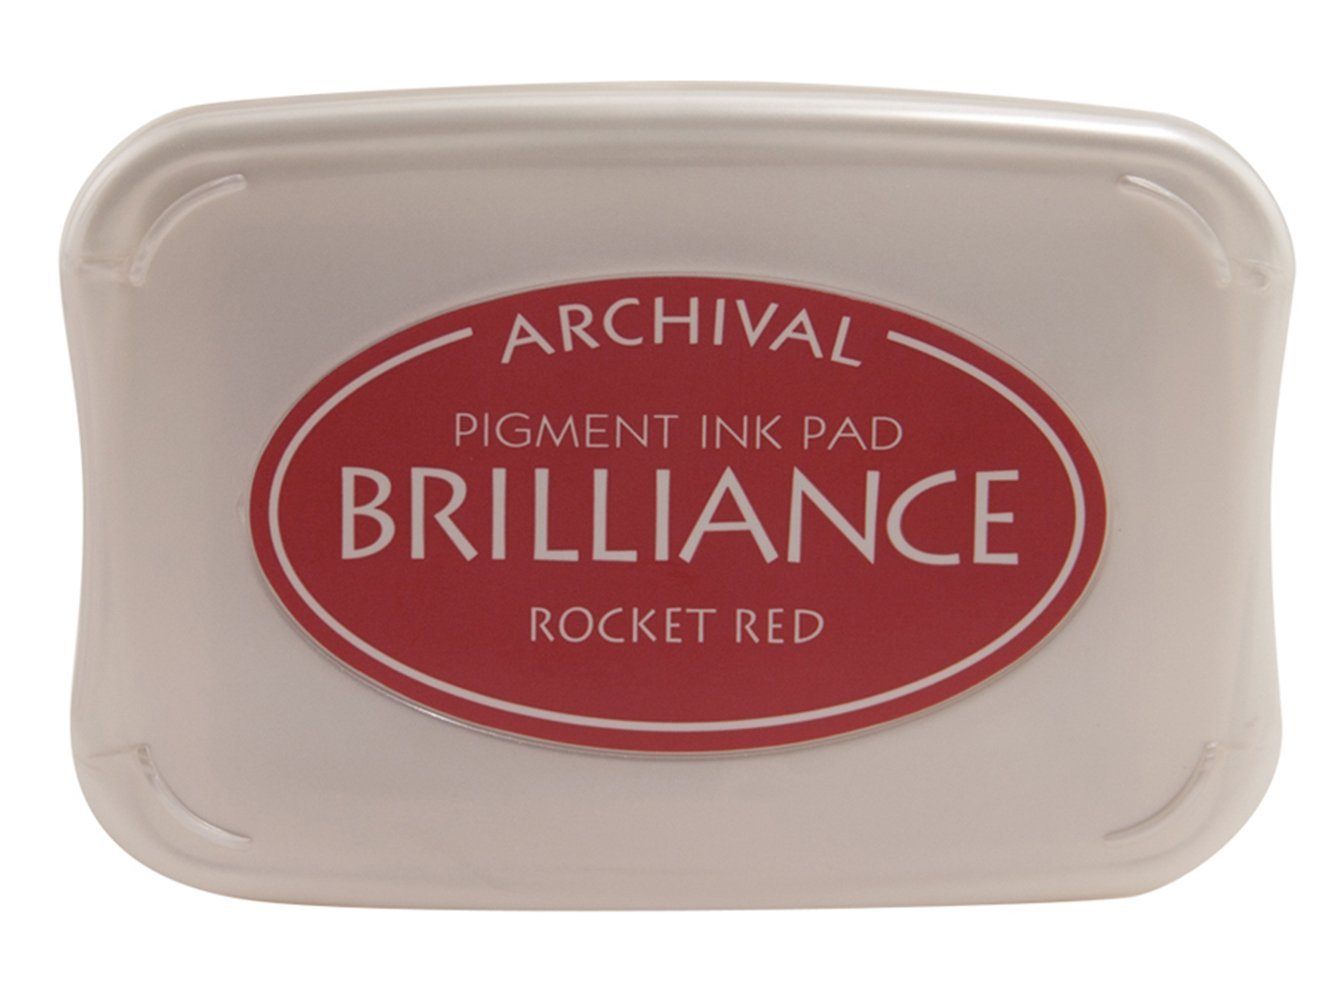 Rocket Red Brilliance Ink Pad